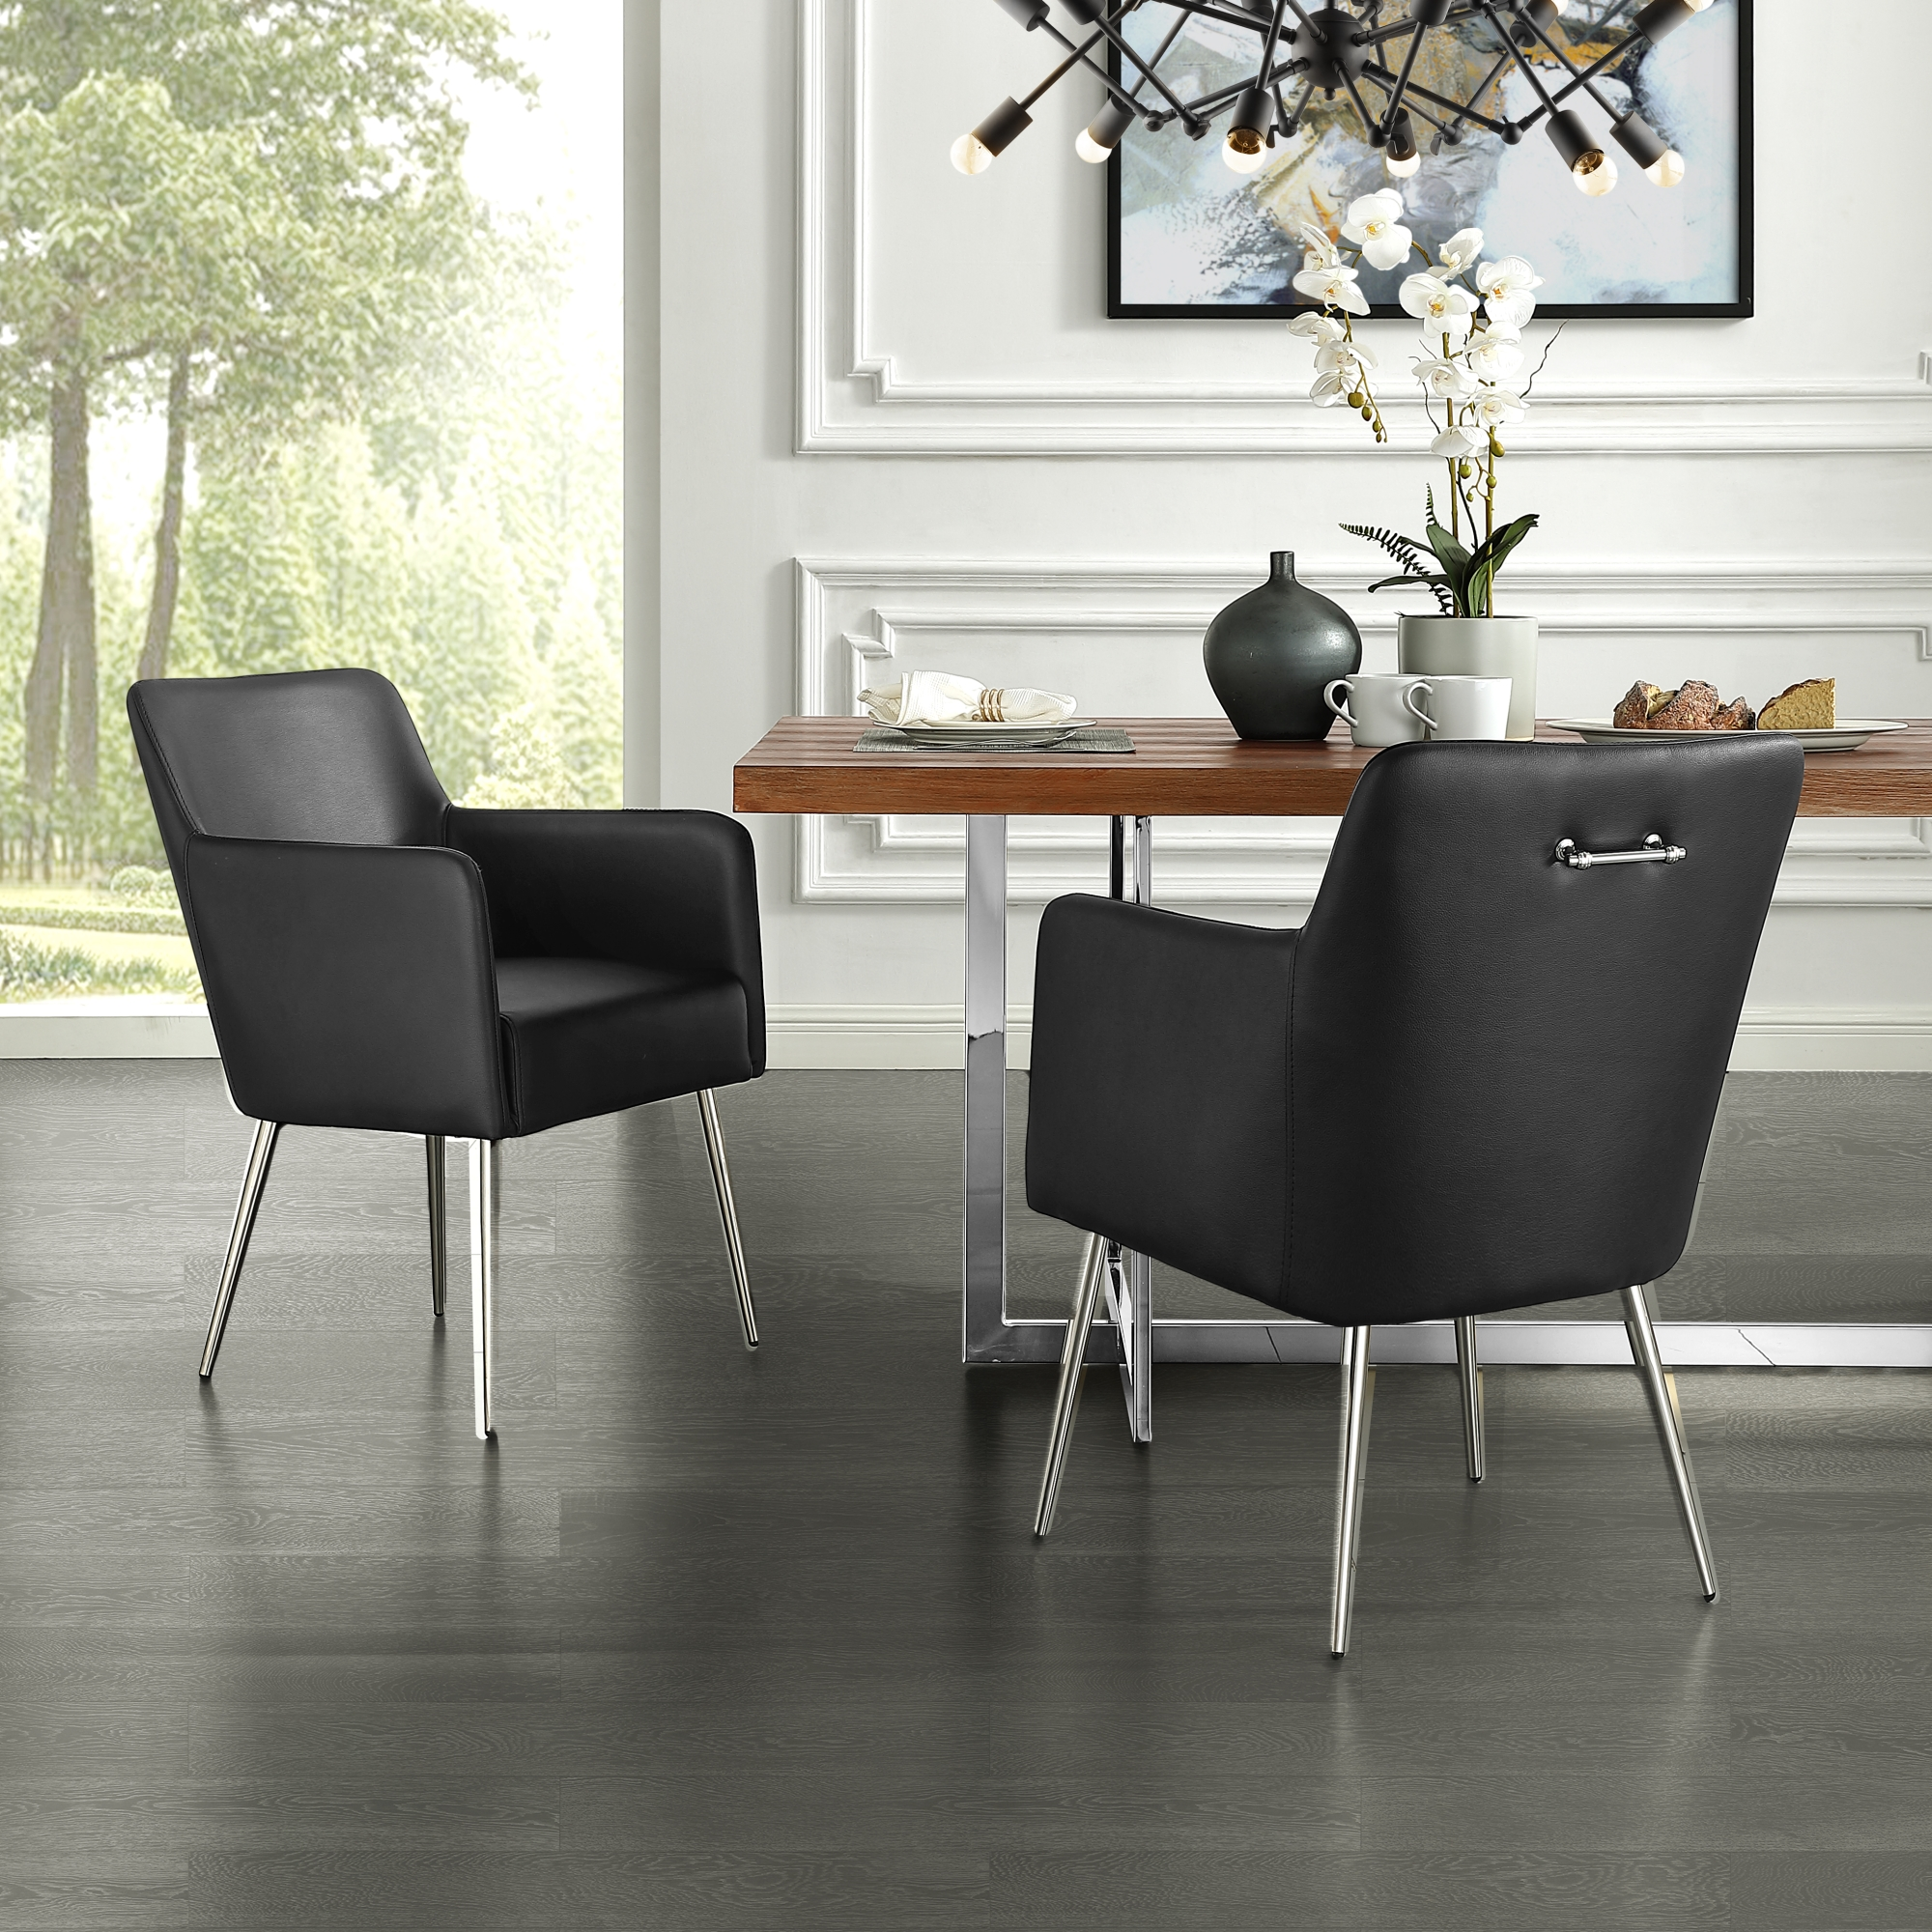 Inspired Home Black PU Leather Dining Chair Chrome Silver Finish Handle and Legs Arm